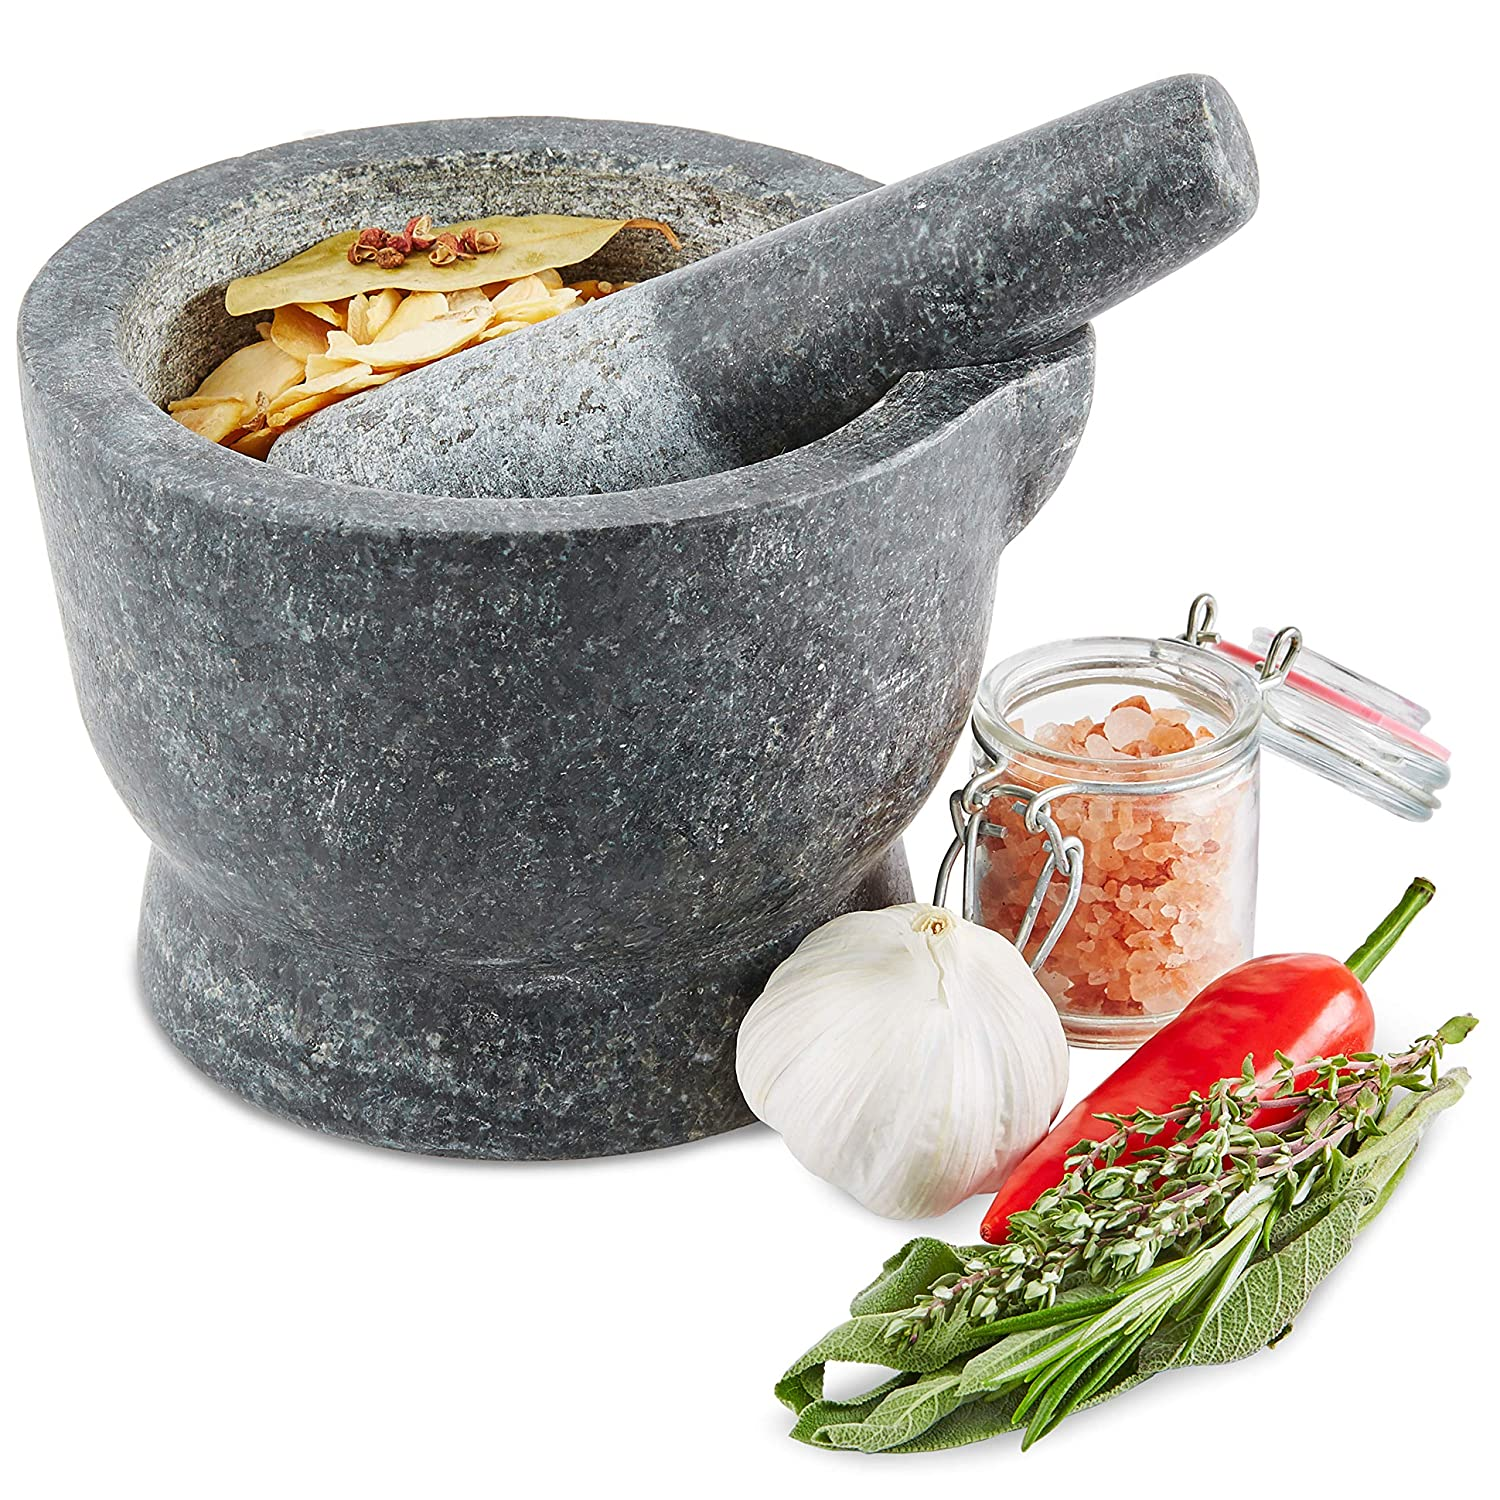 Andrew James Pestle and Mortar Set | Solid Granite Stone | Large 15cm Diameter Bowl with Easy Pour Lip 5060146062916